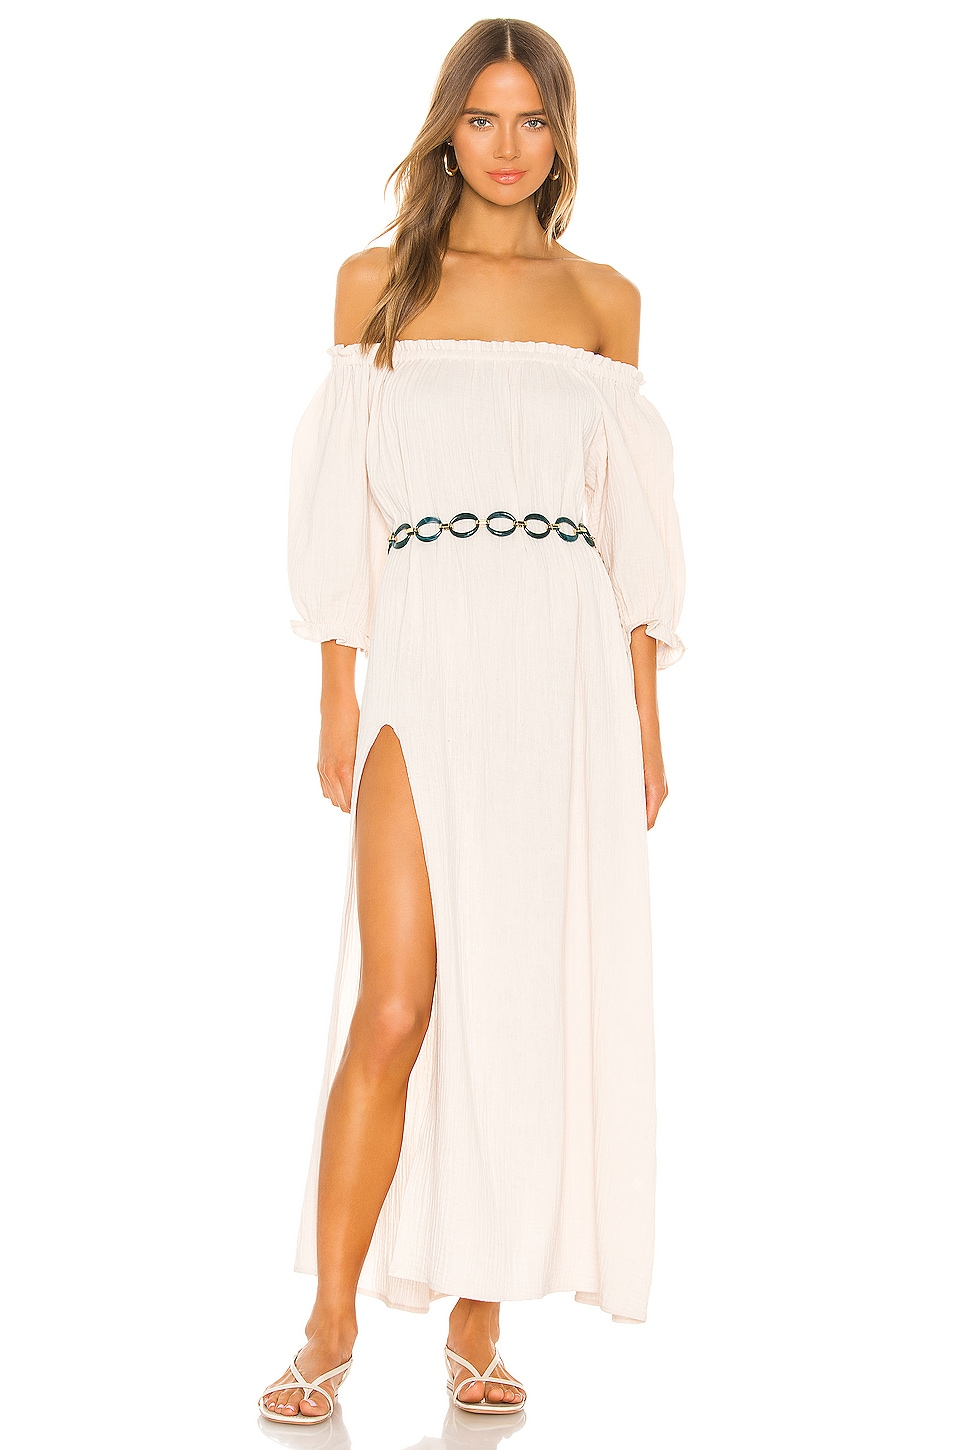 FLYNN SKYE Takata Maxi Dress in Marrow